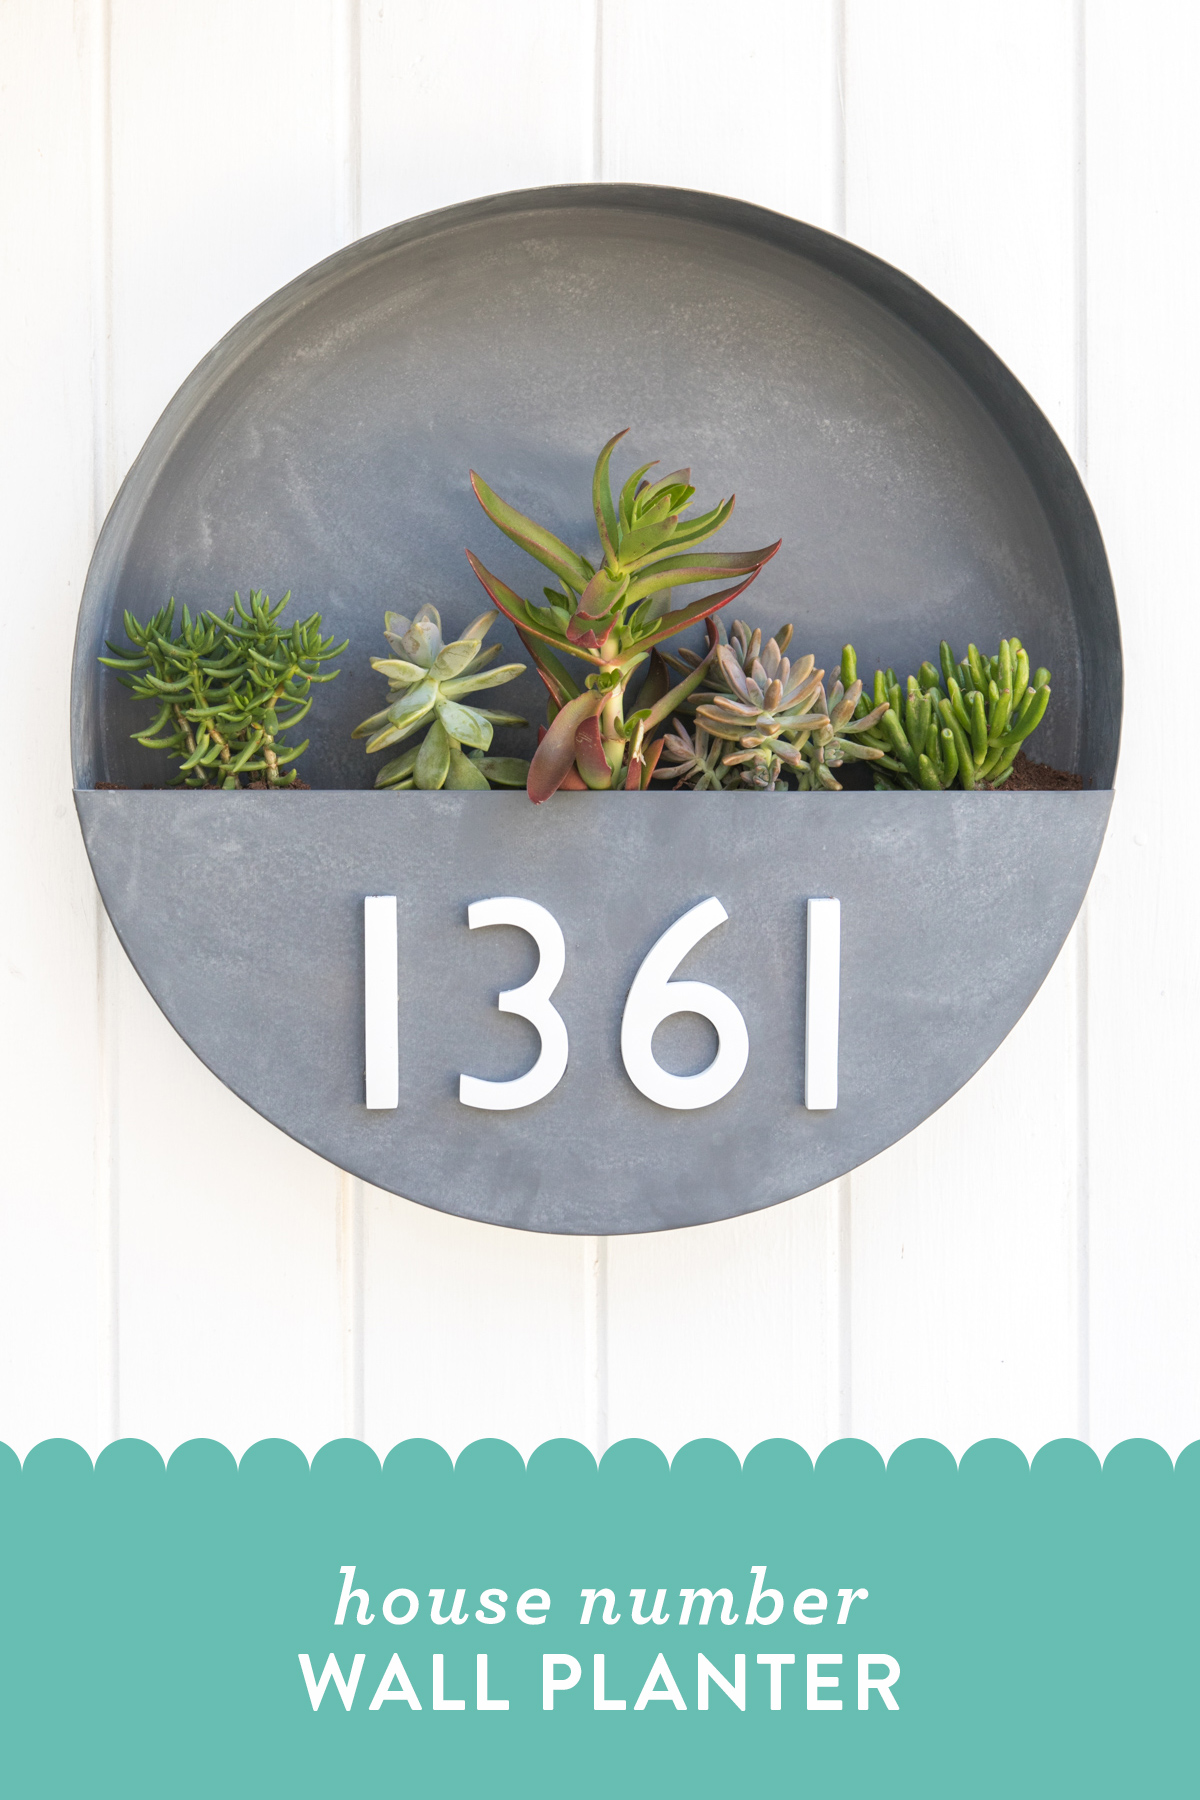 Learn how to make your own modern house number wall planter! It's a great way to spruce up a rental home!